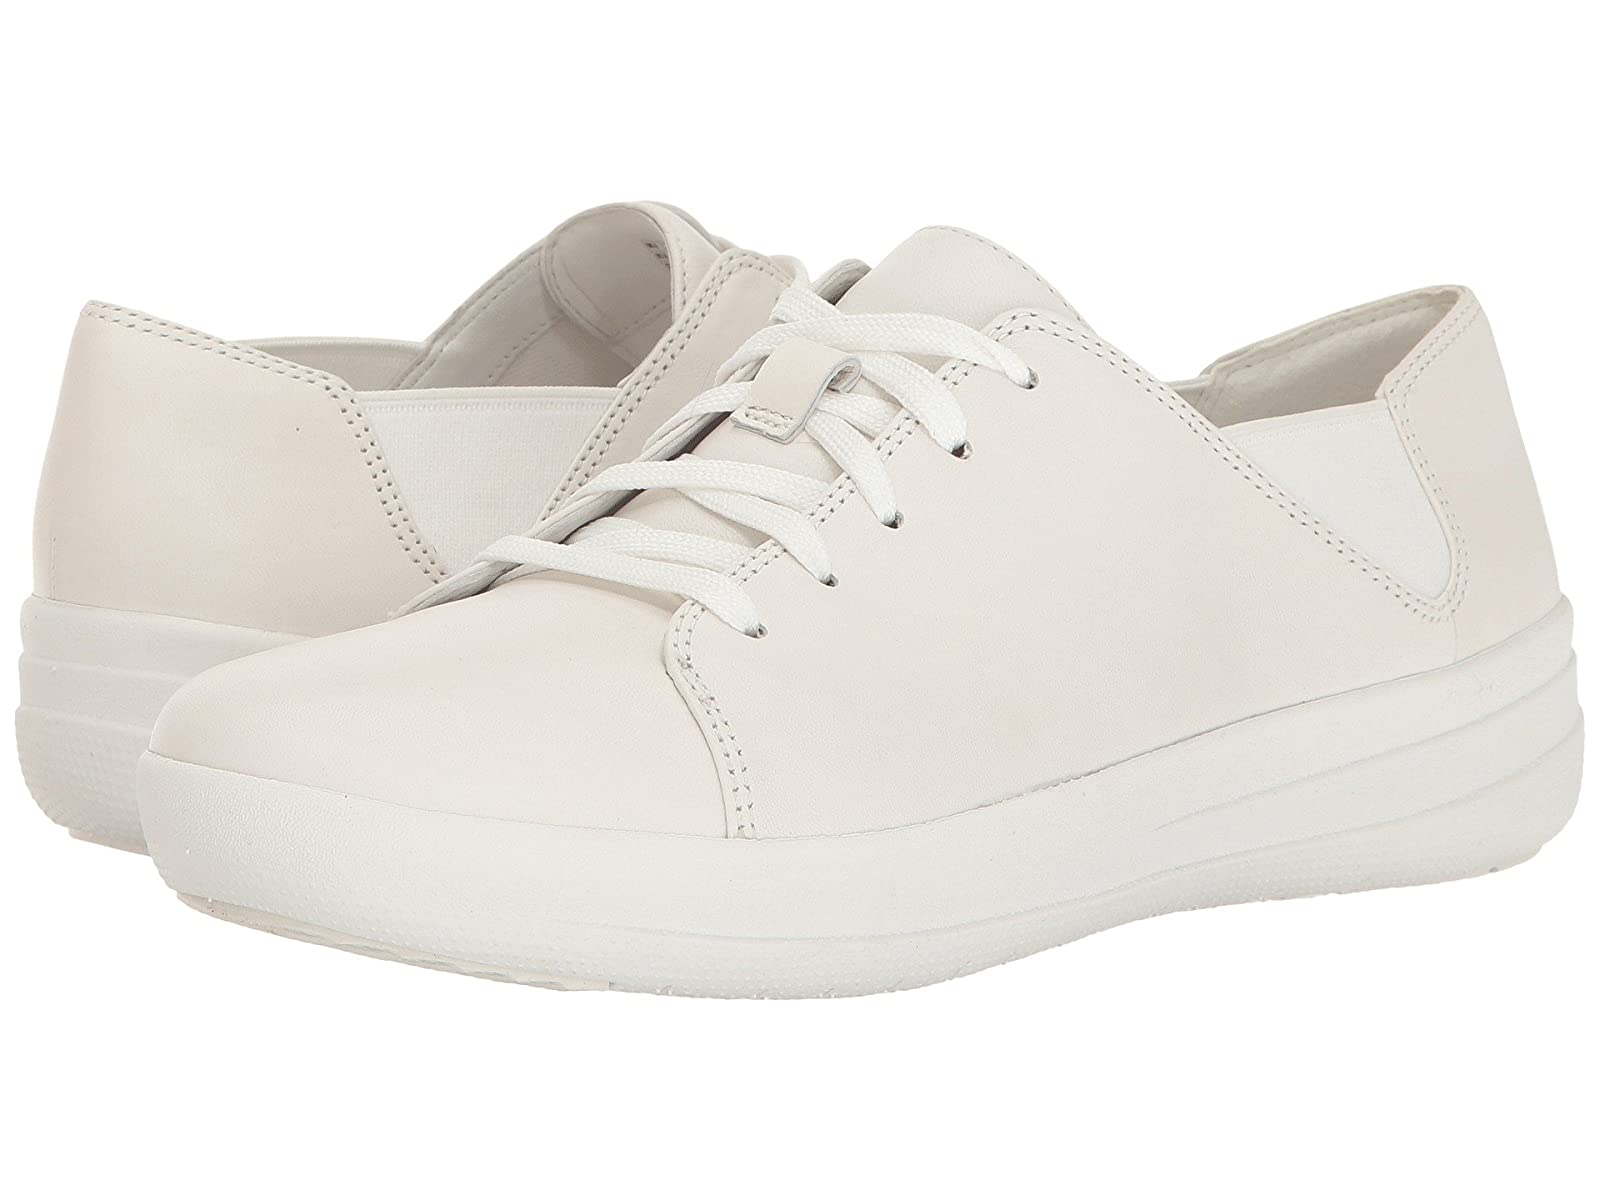 FitFlop Sporty Lace-Up SneakerCheap and distinctive eye-catching shoes